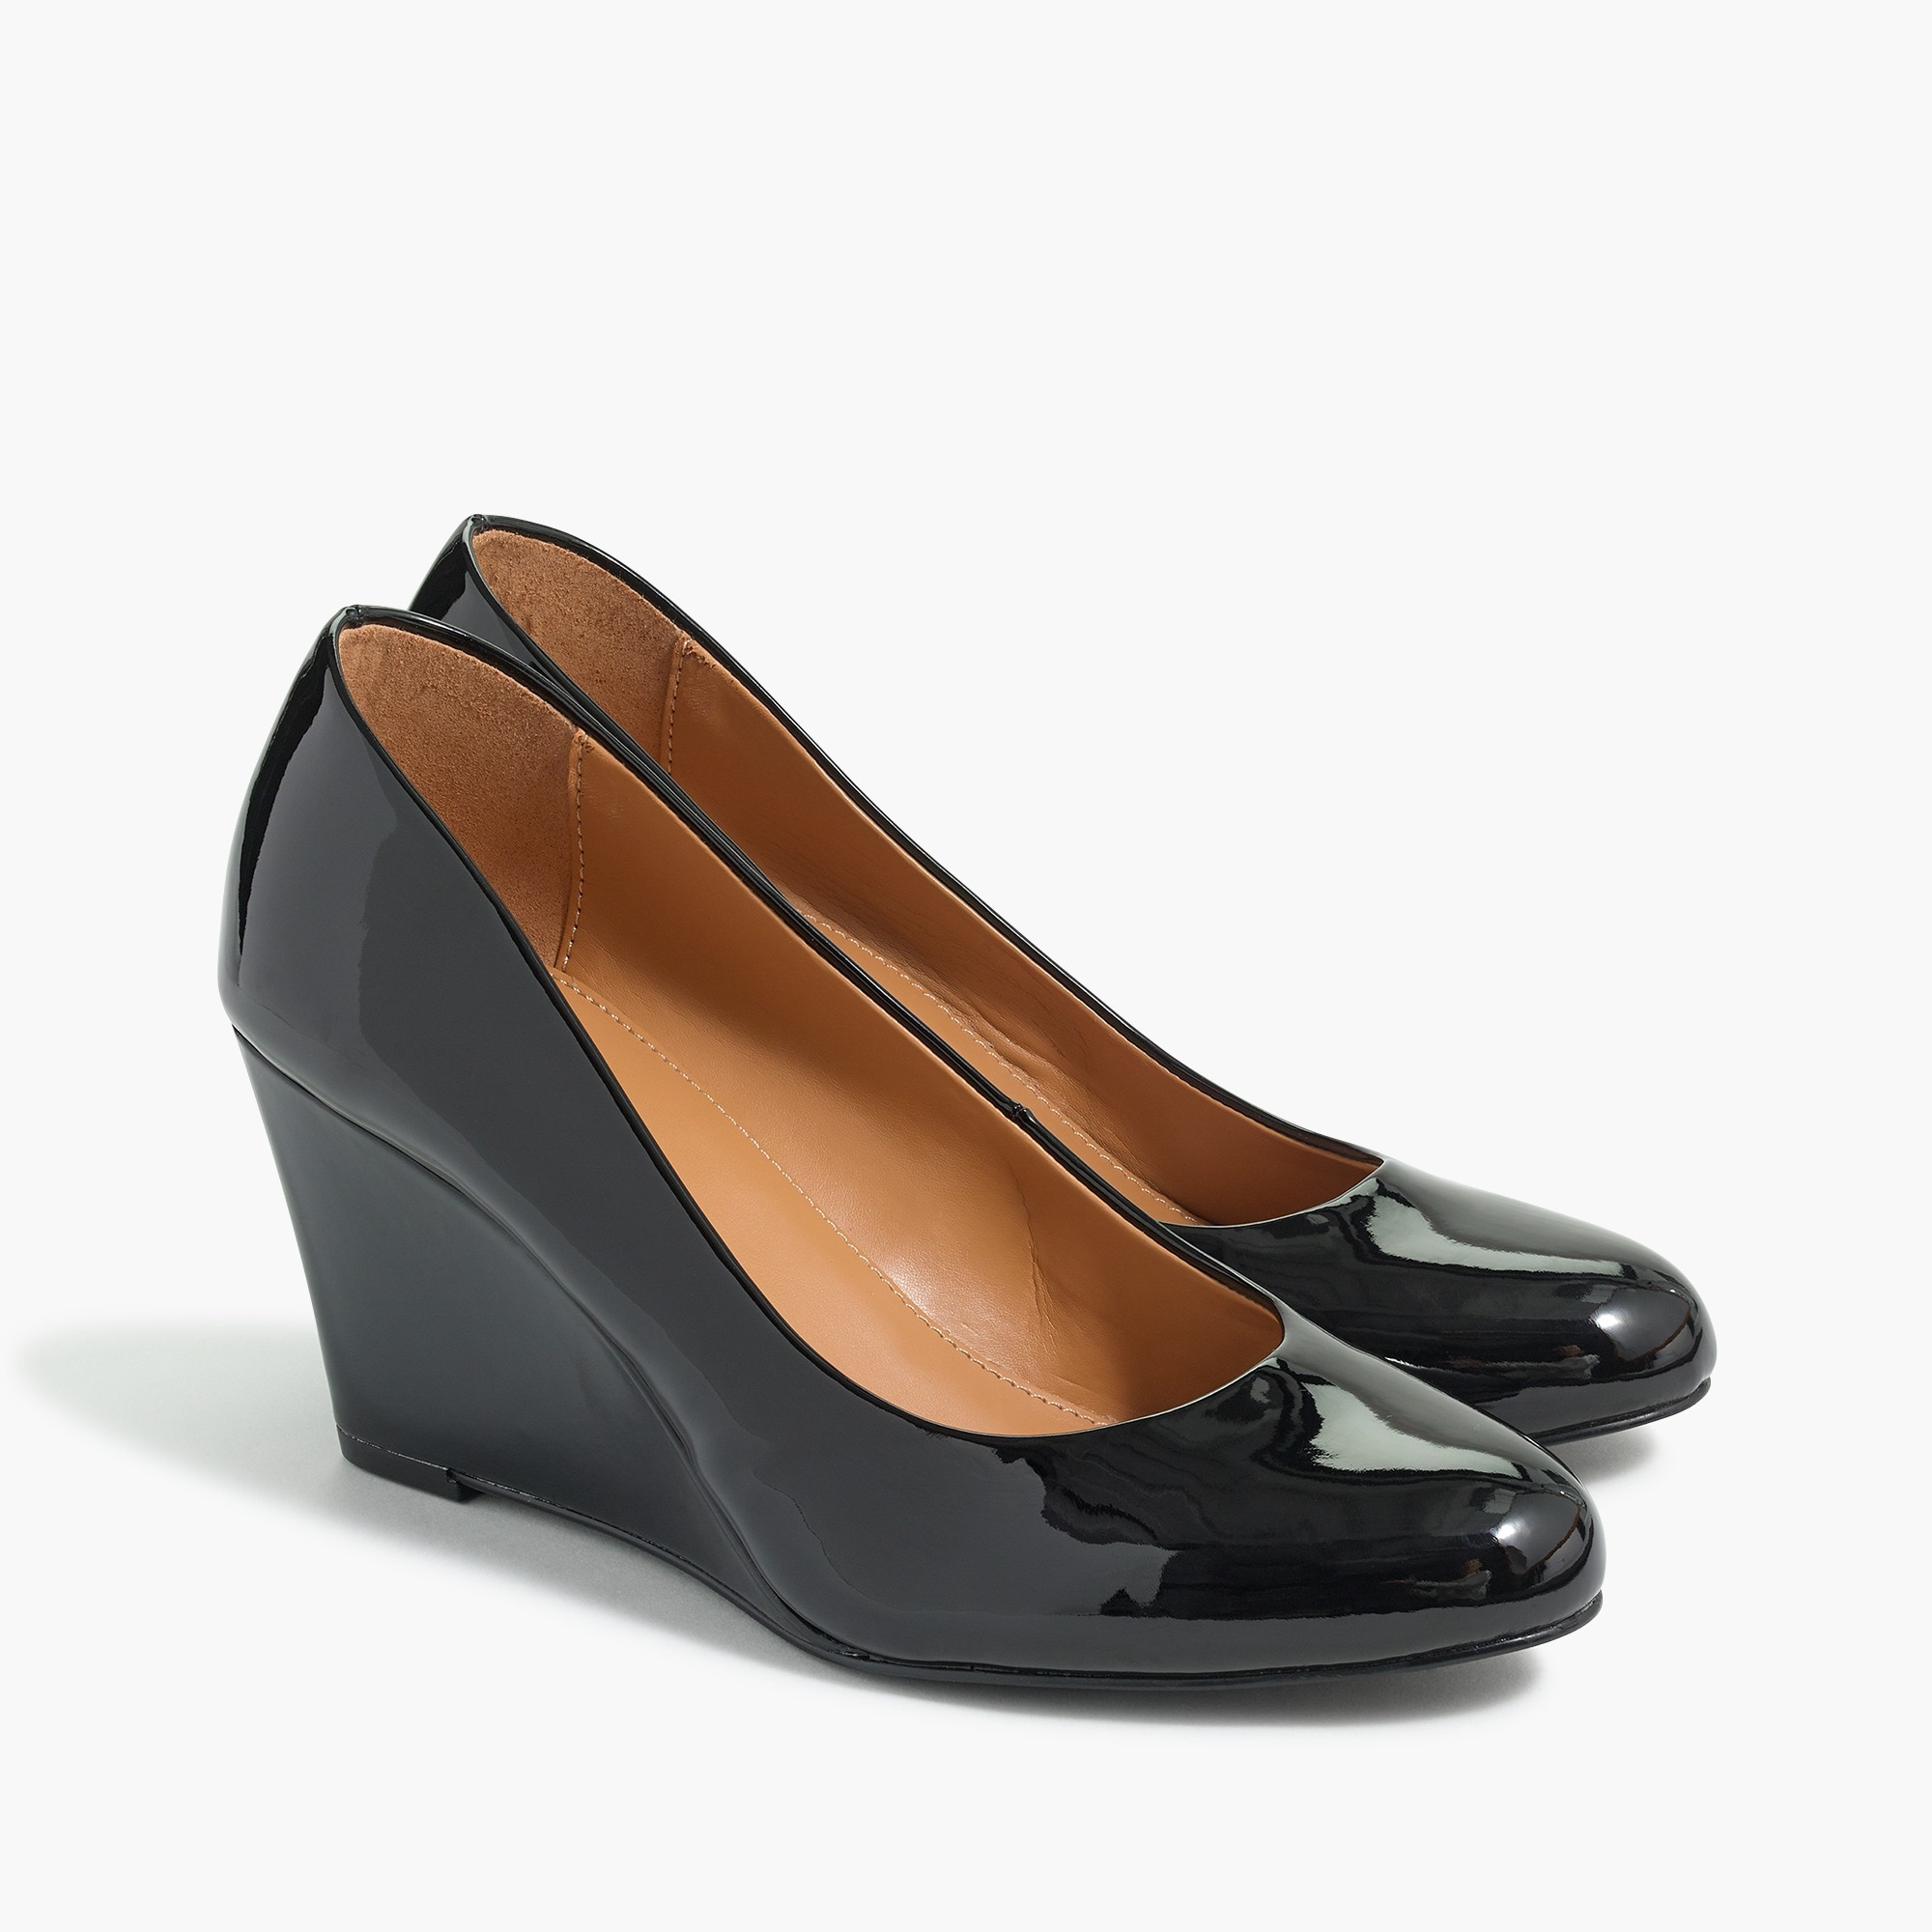 women's sylvia patent wedges - women's footwear